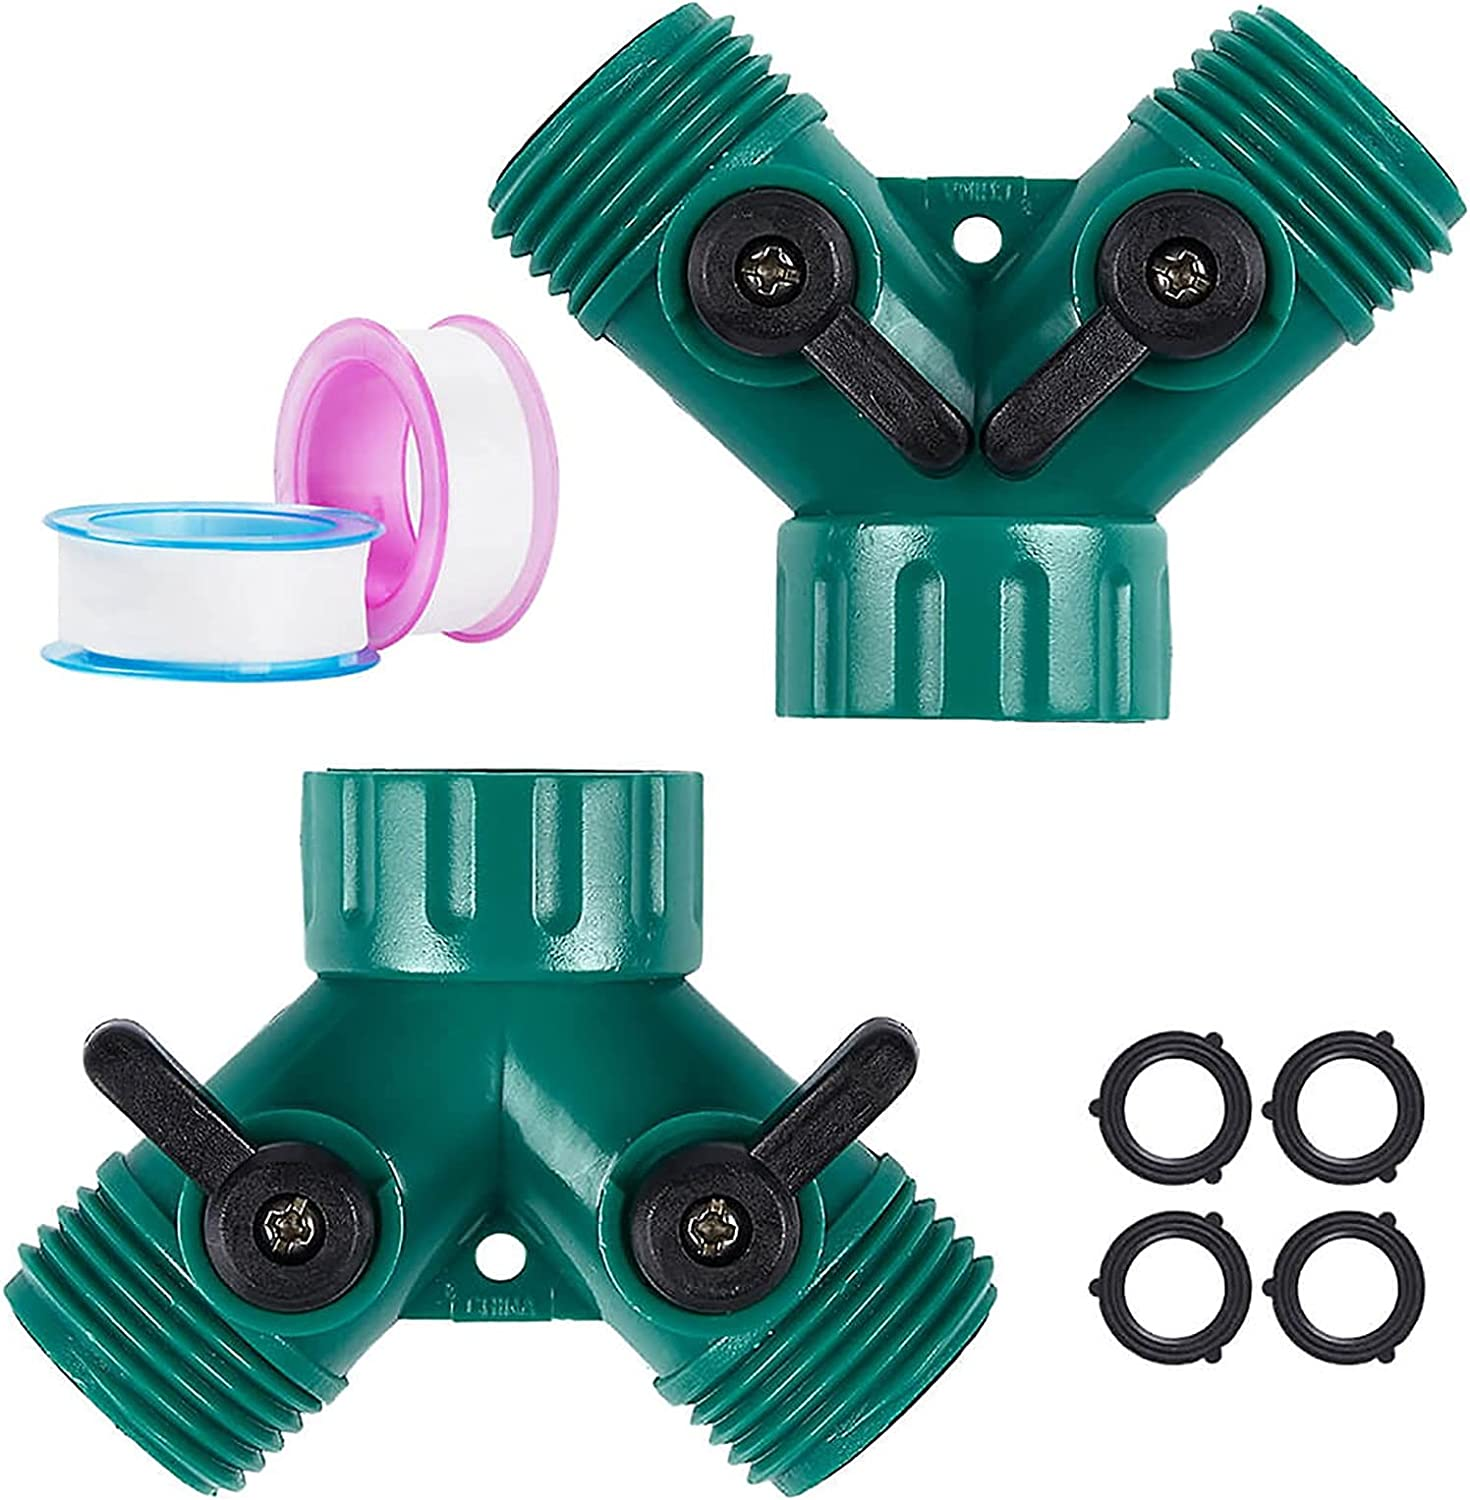 2 Way Hose Splitter Garden Hose Y Connector Brass Garden Hose Adapter Heavy Duty Water Hose Splitter with 6 Rubber Washers and 2 Sealant Tape (Plastic,2 Pcs)